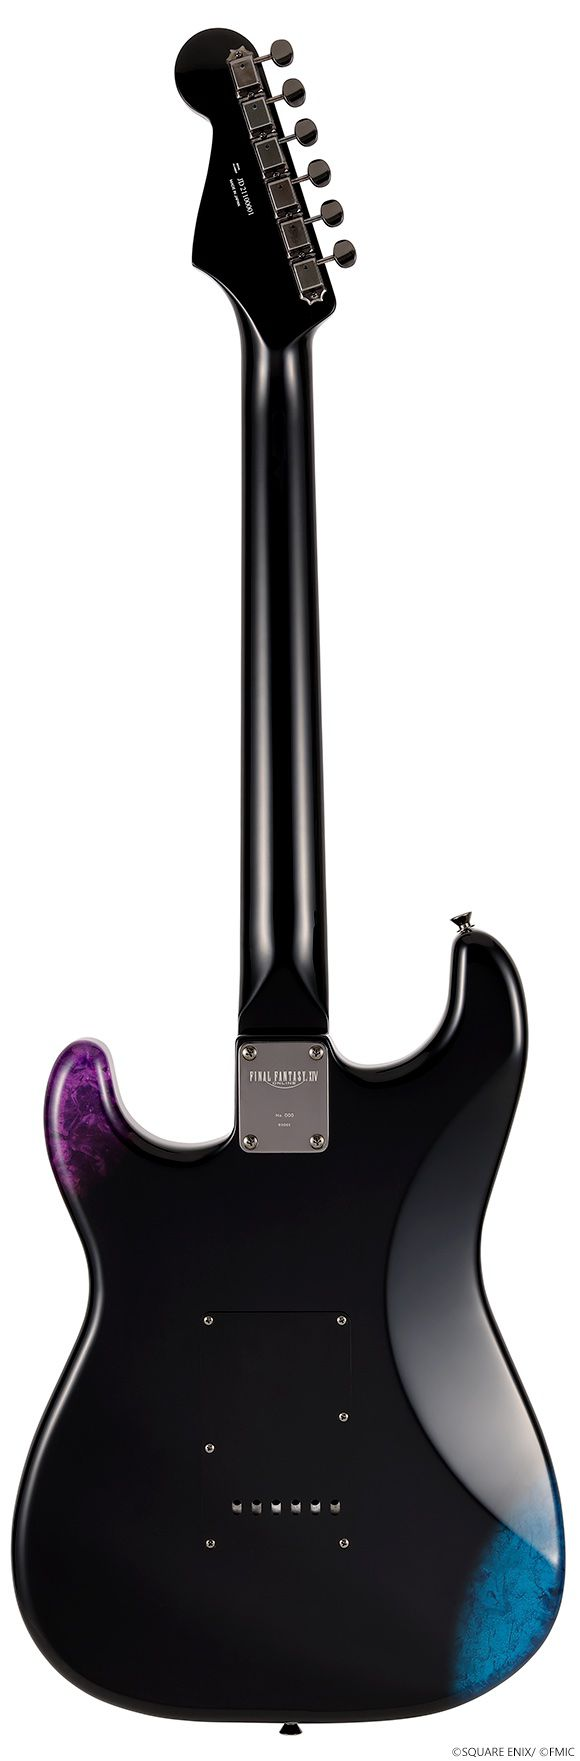 A product shot of the Final Fantasy 14 Fender Stratocaster (back)